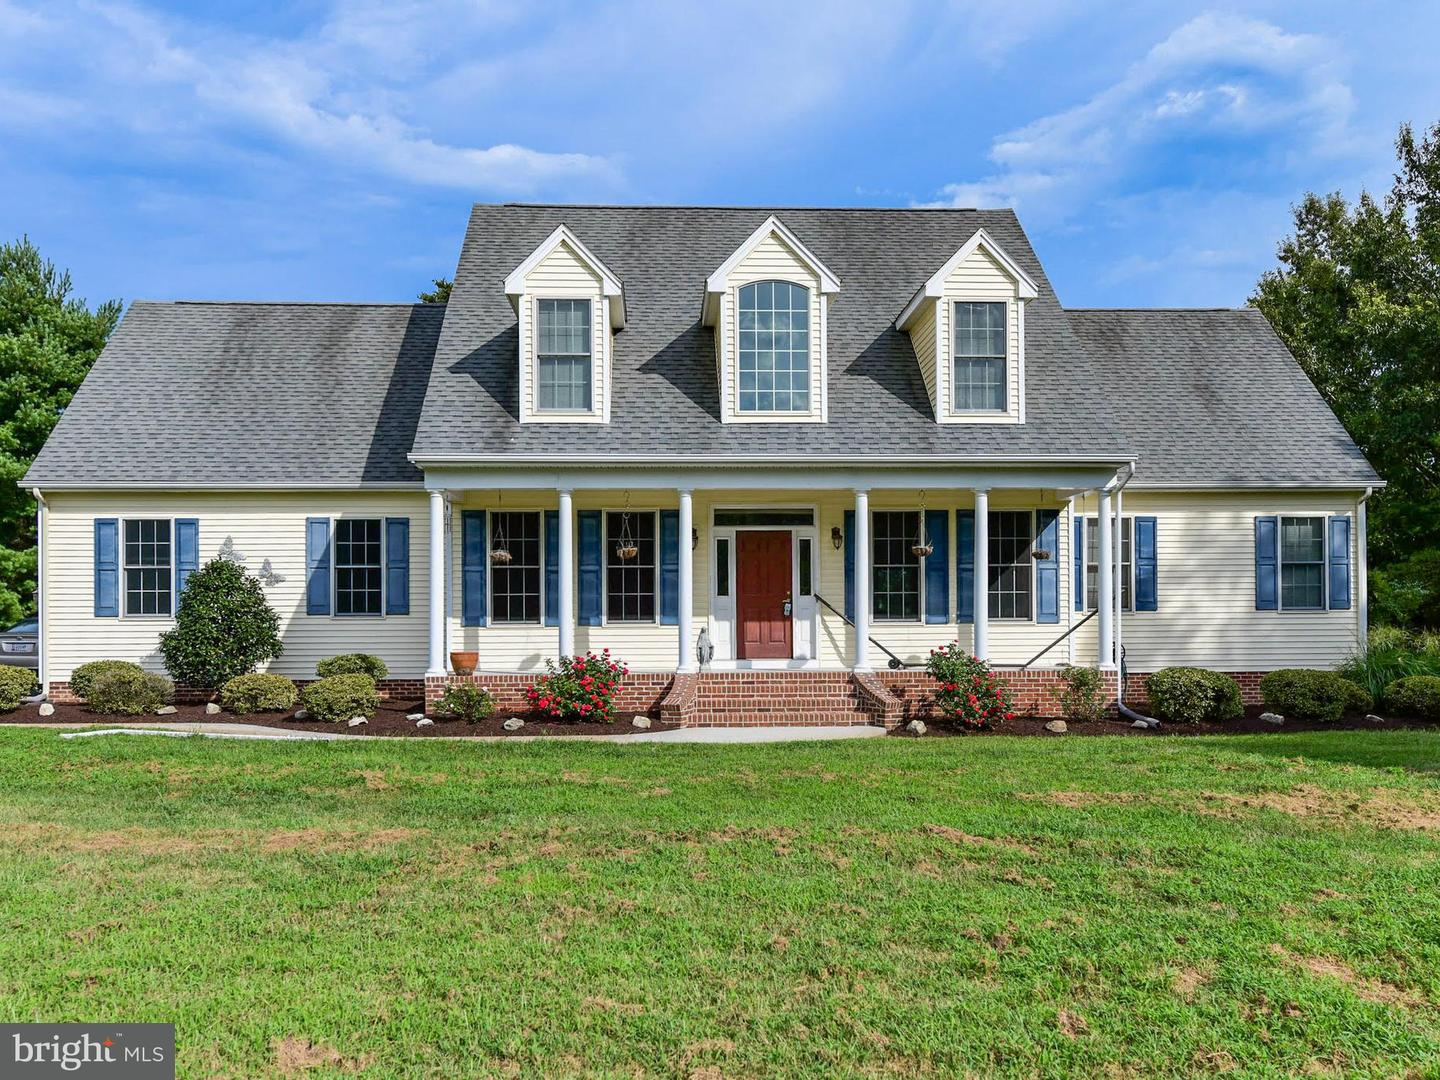 Other Residential for Sale at NONE AVAILABLE, 3351 Redden Ferry Road Eden, Maryland 21822 United States